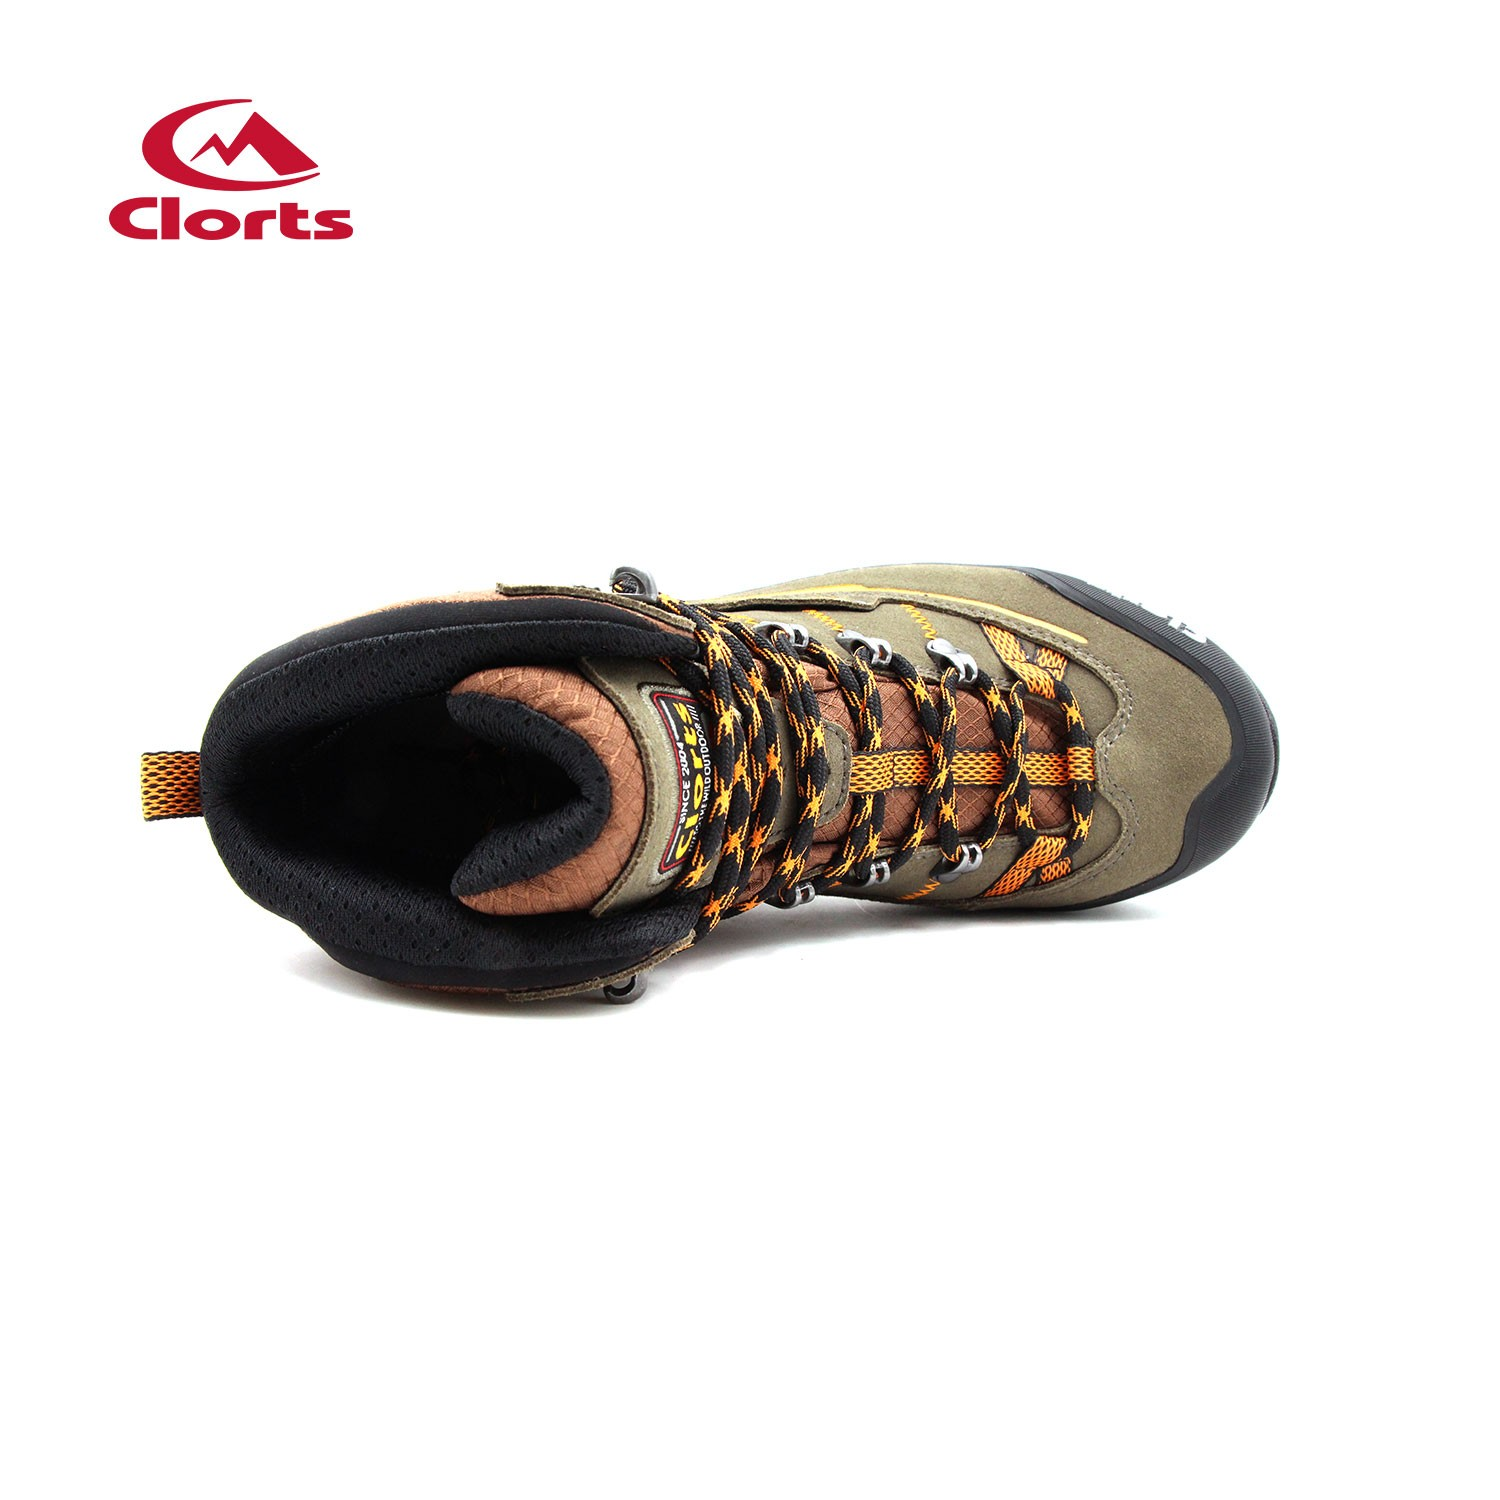 Clorts Mens Mid Outdoor Backpacking Trekking Trails Boots Brown Manufacturers, Clorts Mens Mid Outdoor Backpacking Trekking Trails Boots Brown Factory, Supply Clorts Mens Mid Outdoor Backpacking Trekking Trails Boots Brown